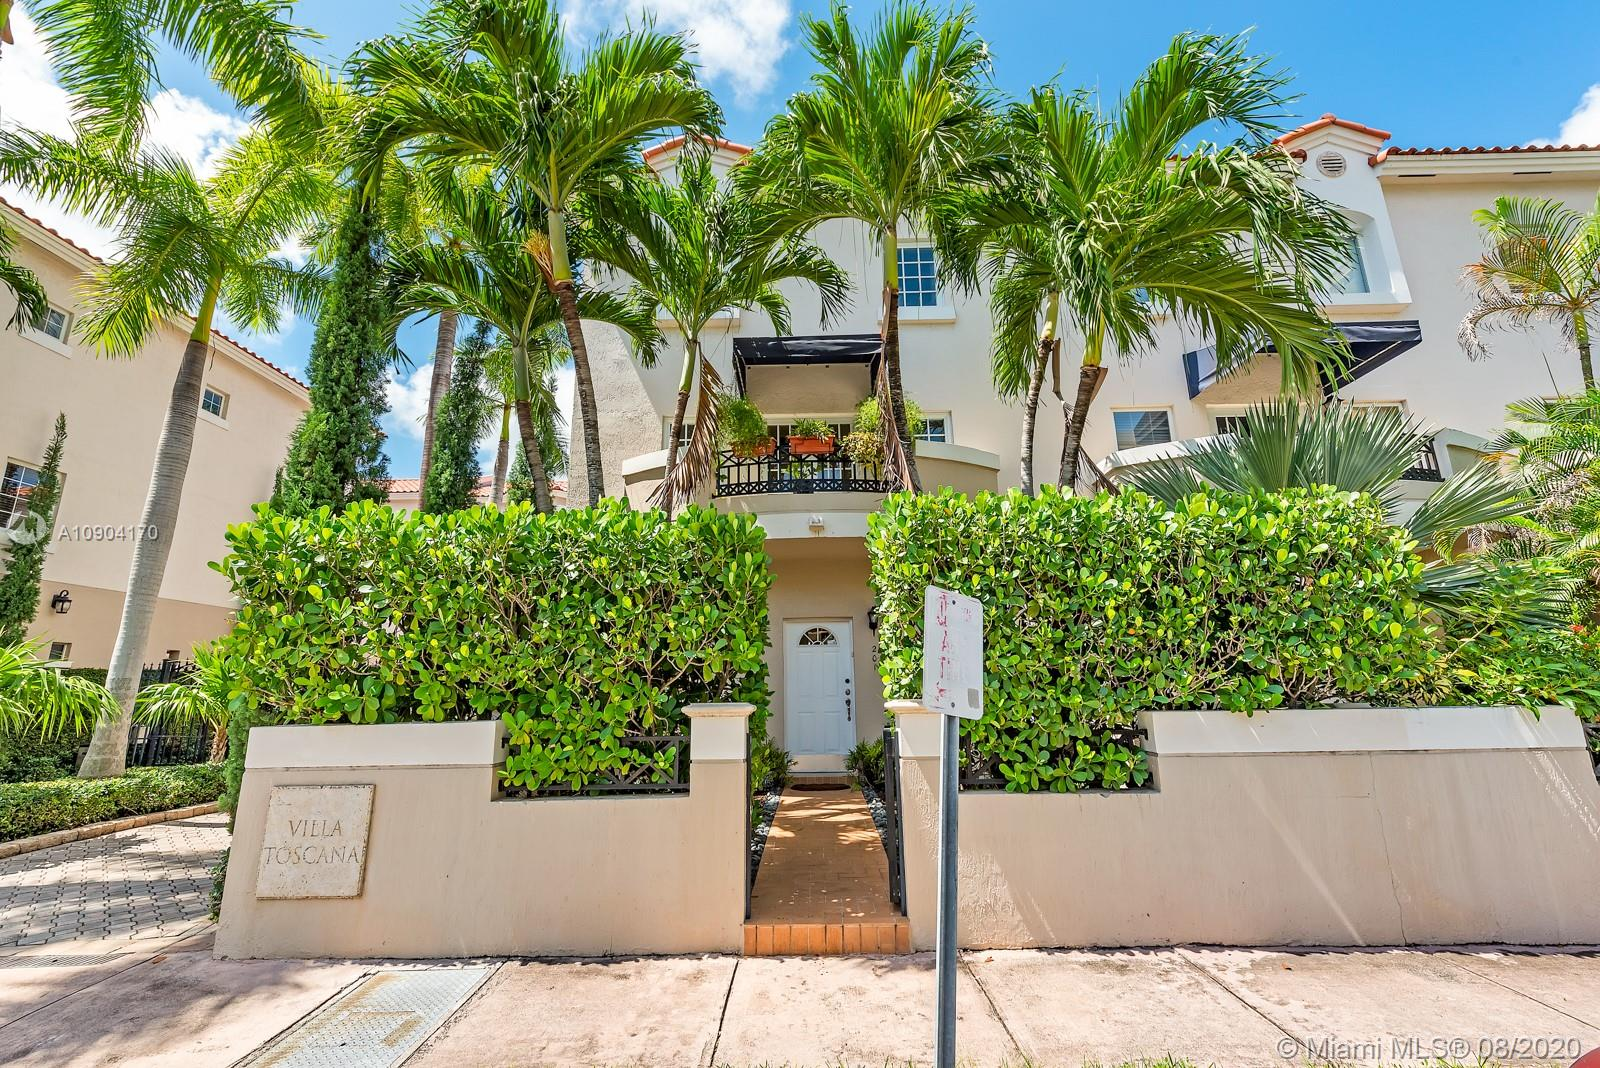 261  Navarre Ave #B-1 For Sale A10904170, FL